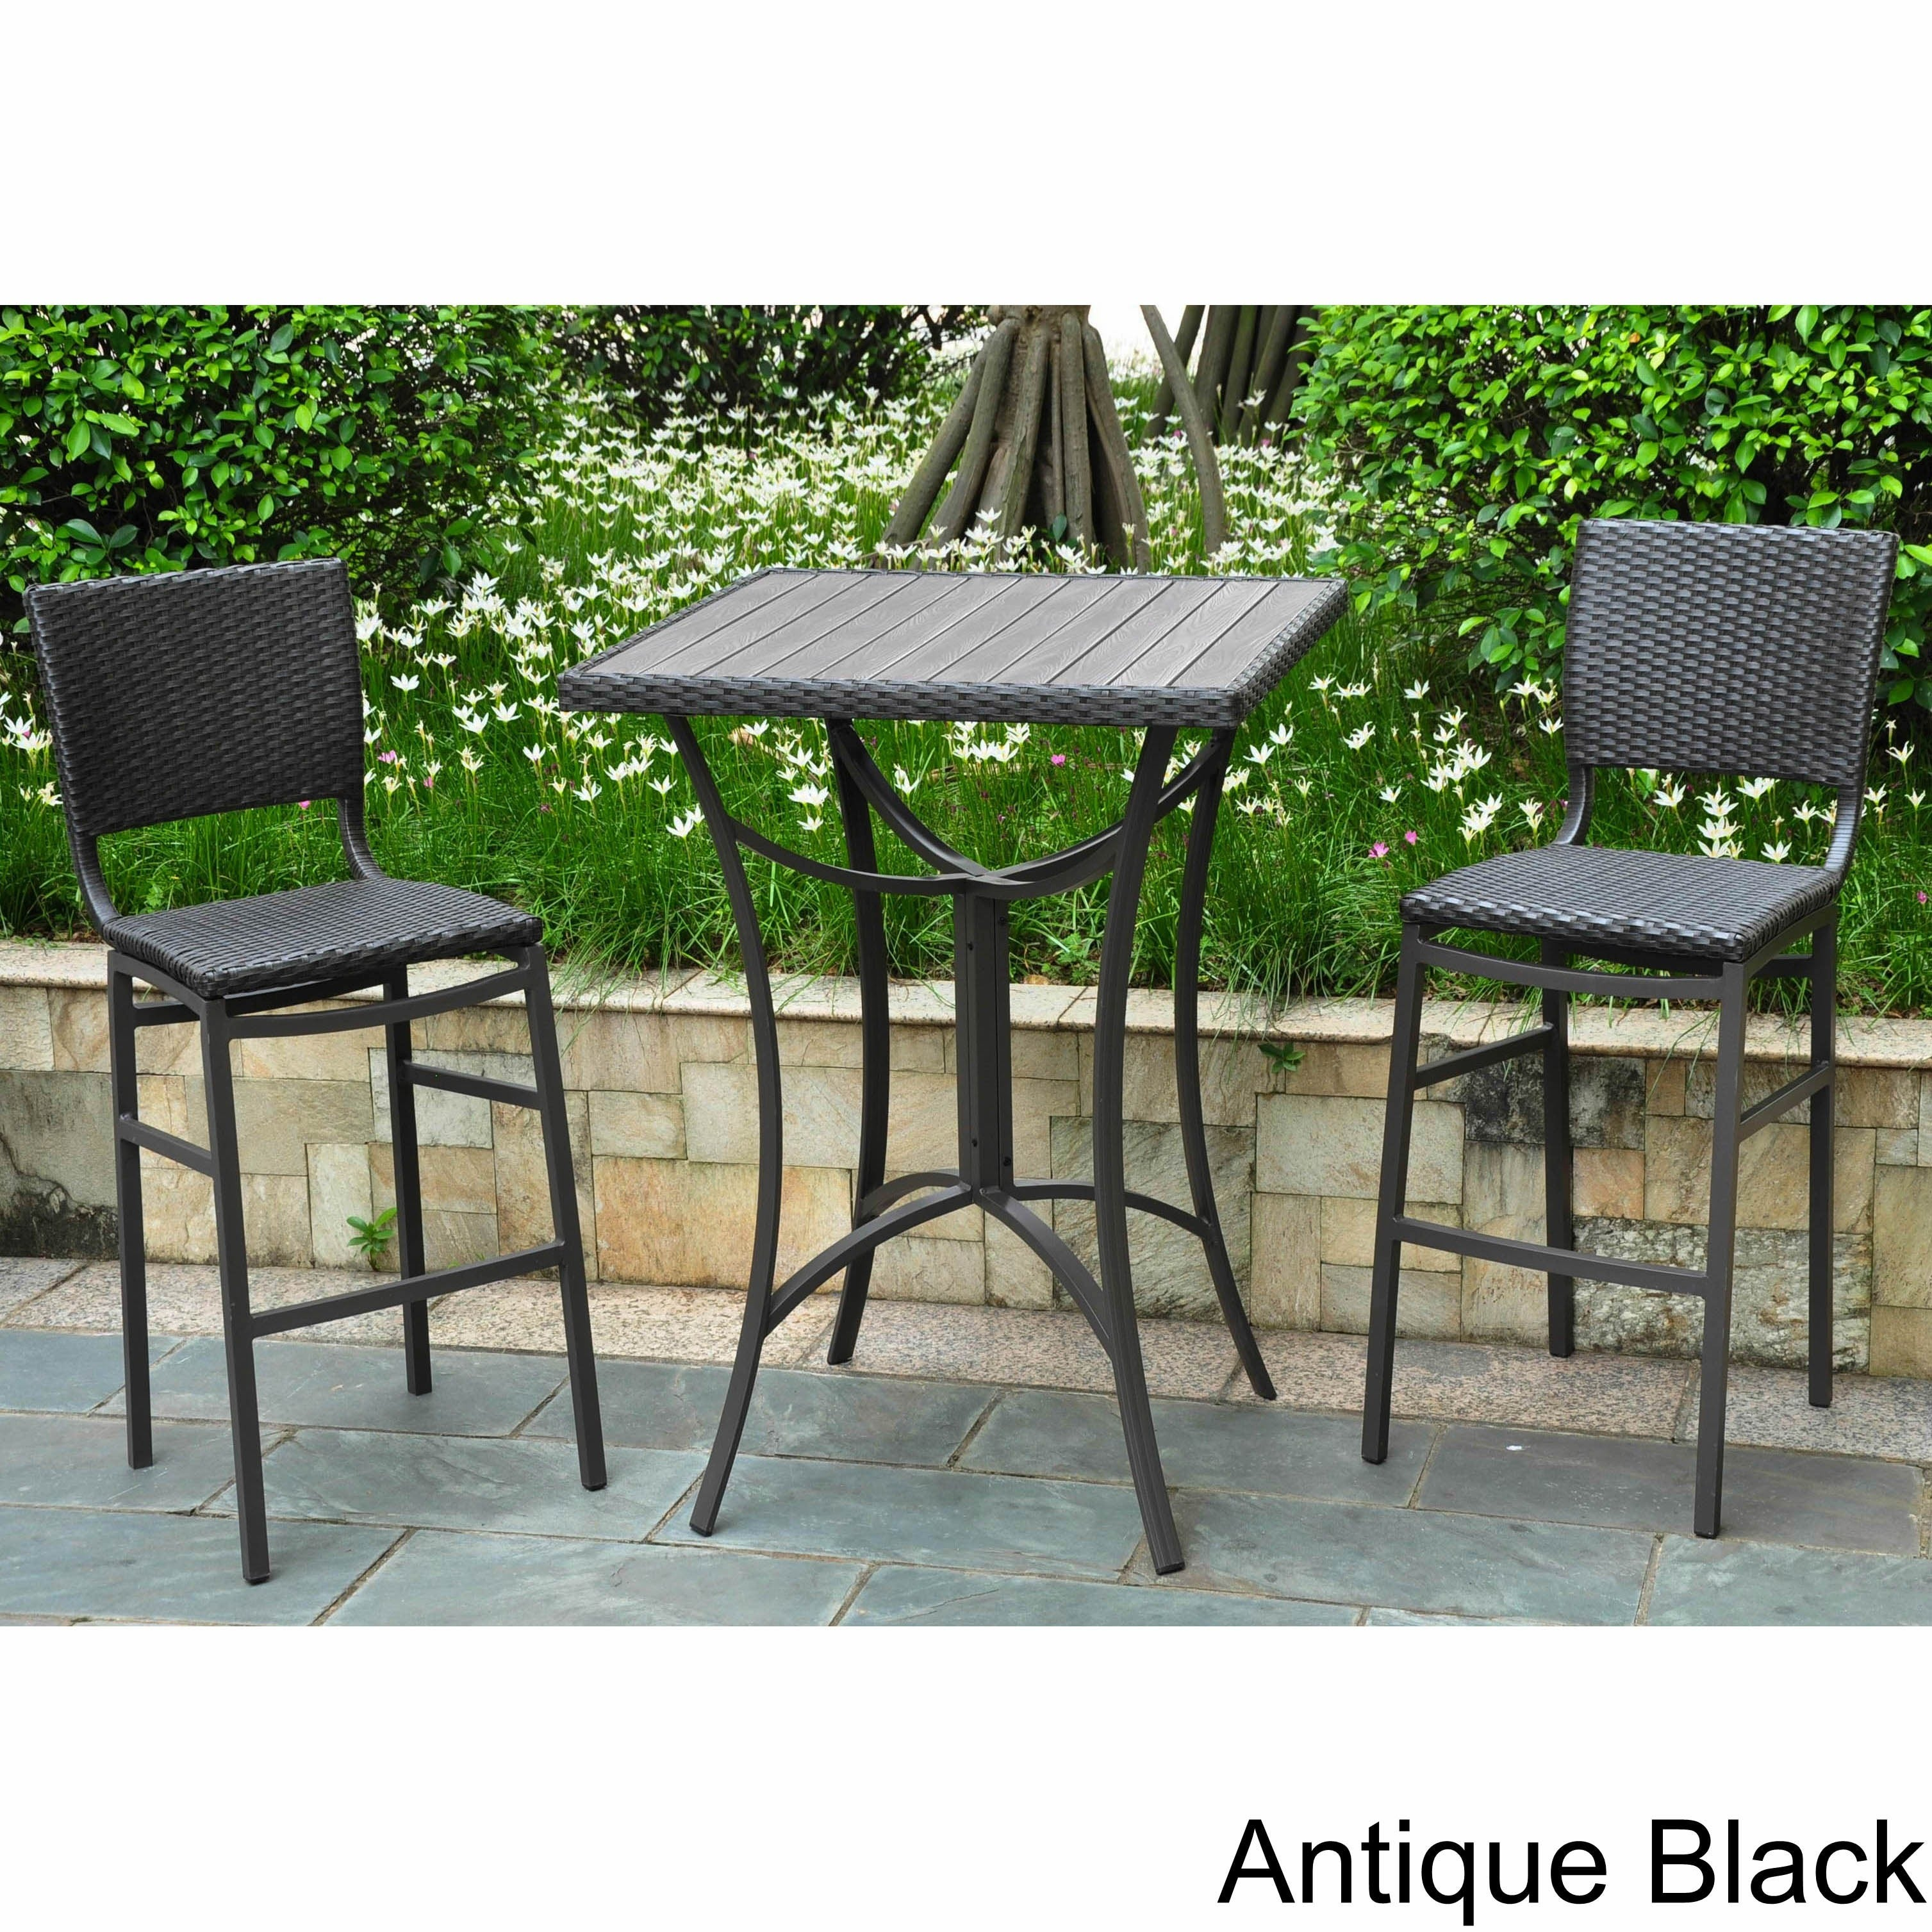 Black Wicker Patio Furniture Find Great Outdoor Seating Dining Deals Ping At